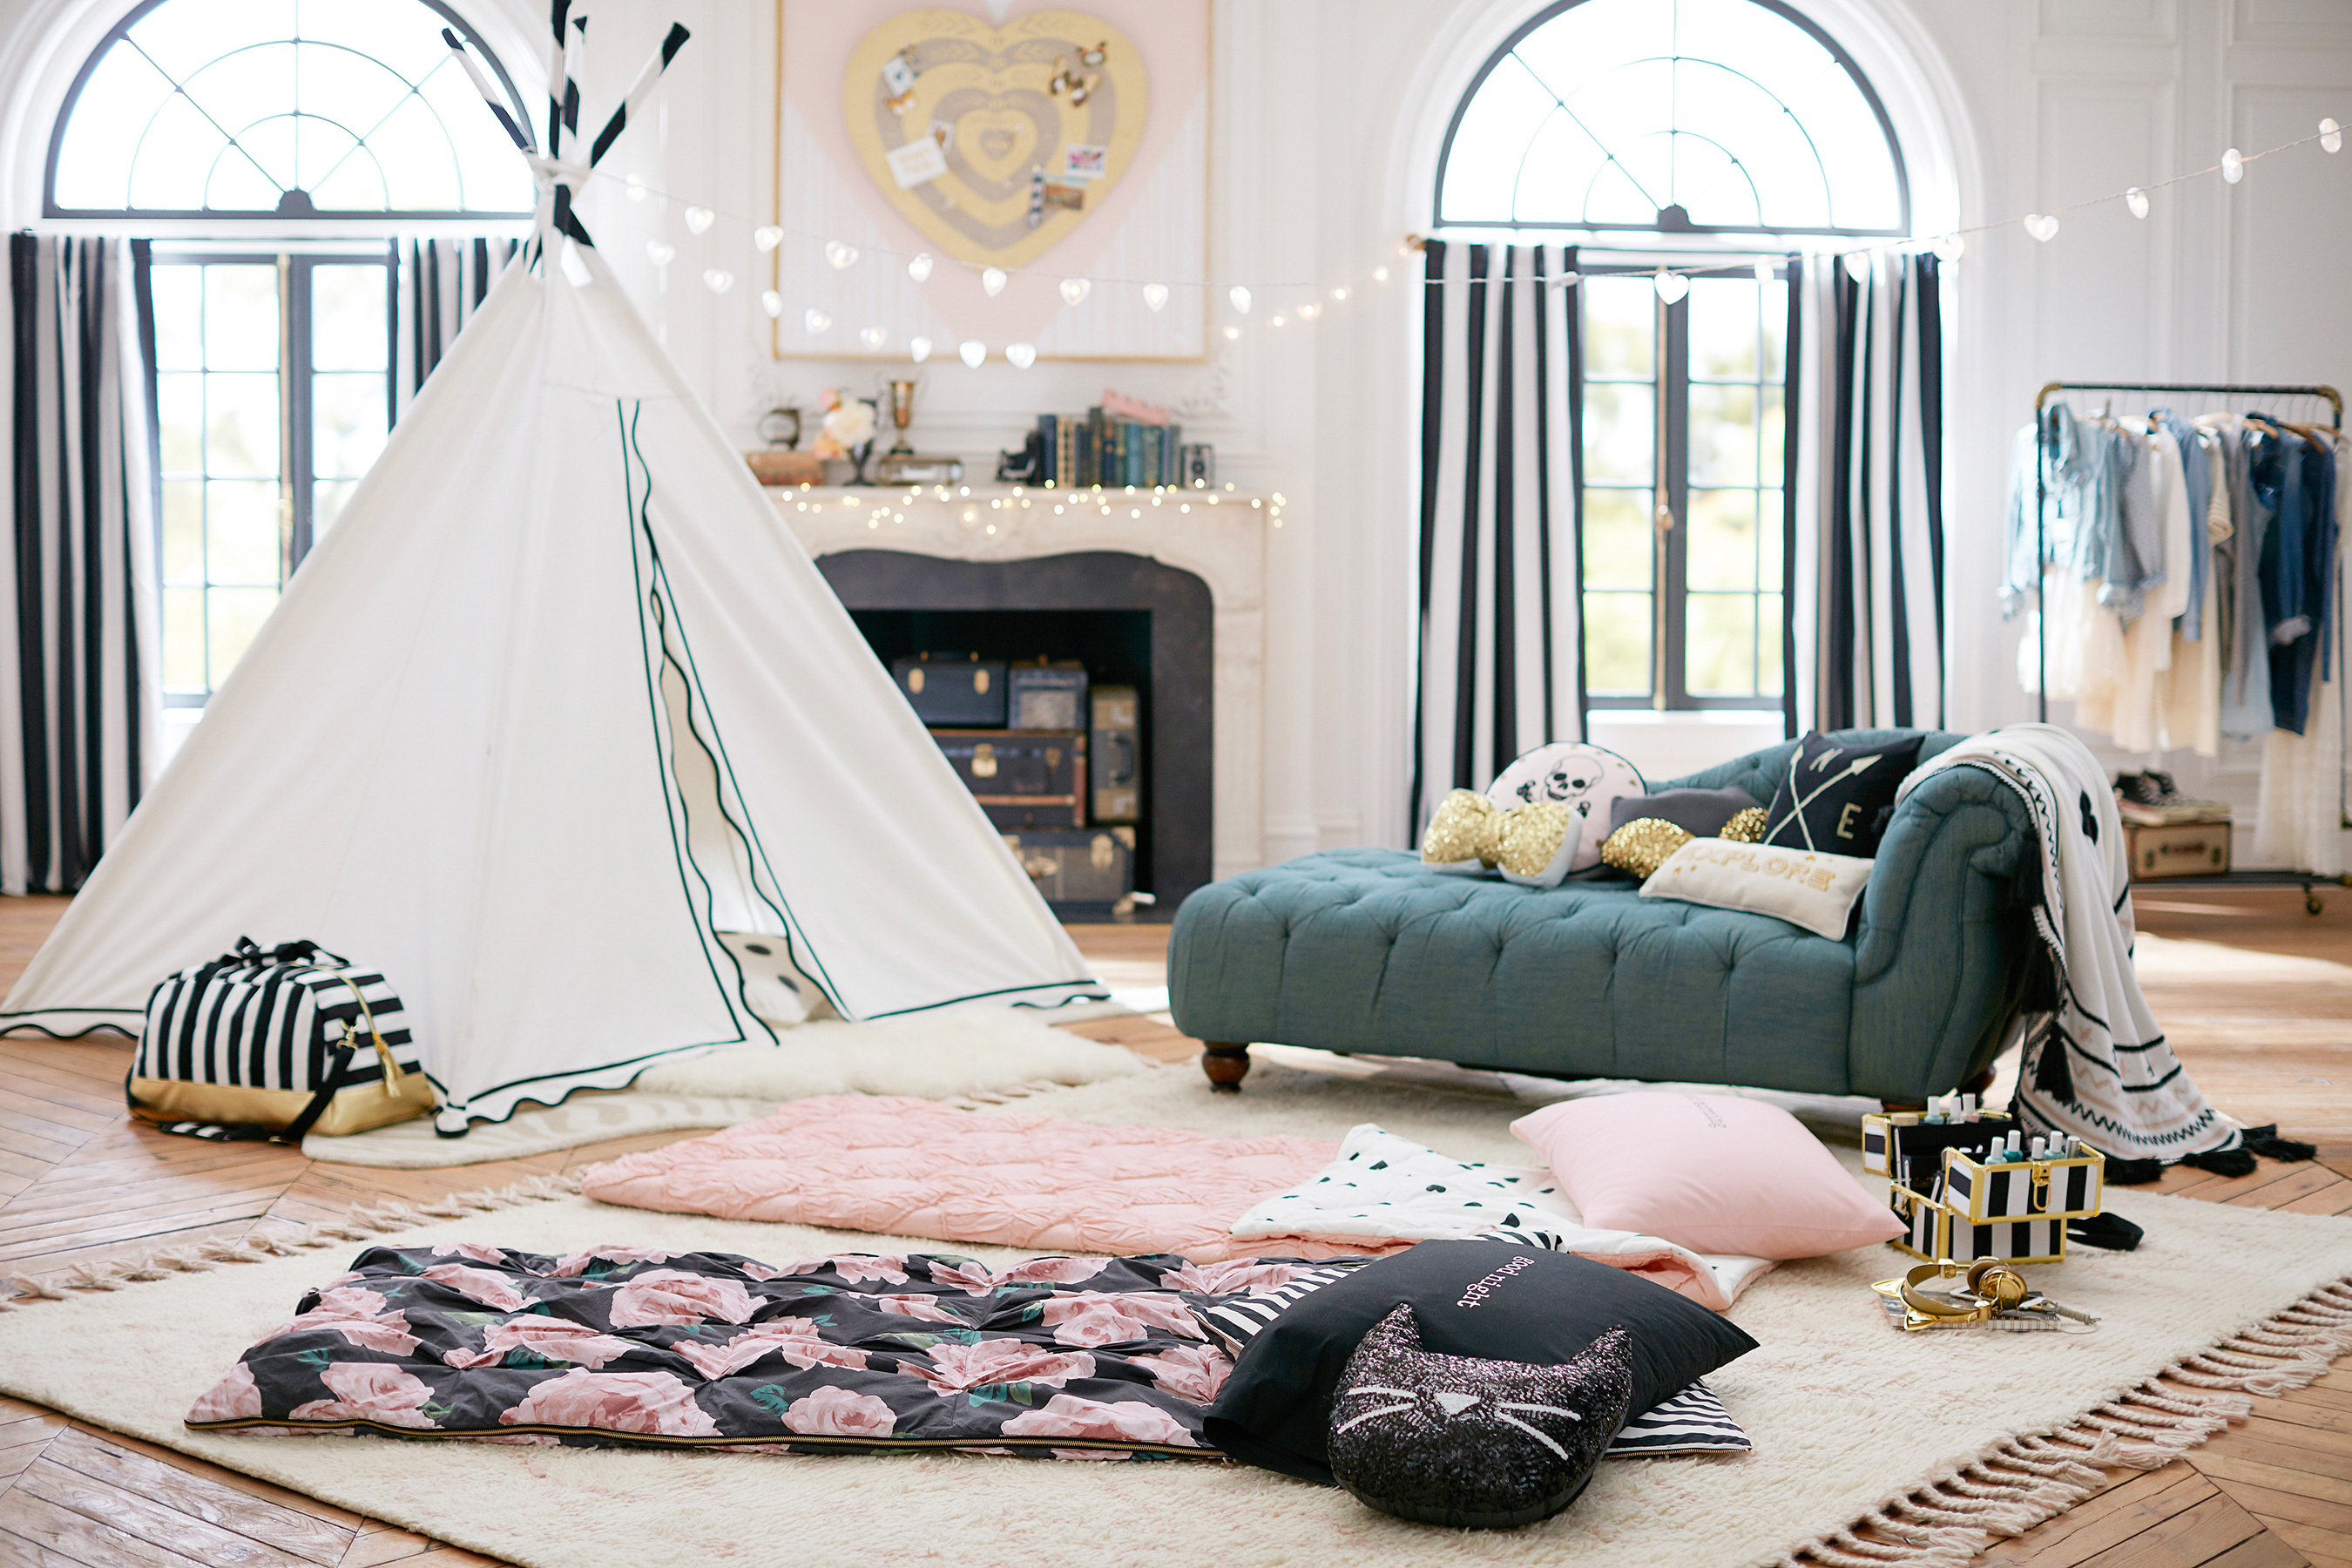 pbteen unveils ultimate indoor glamping colllection | business wire